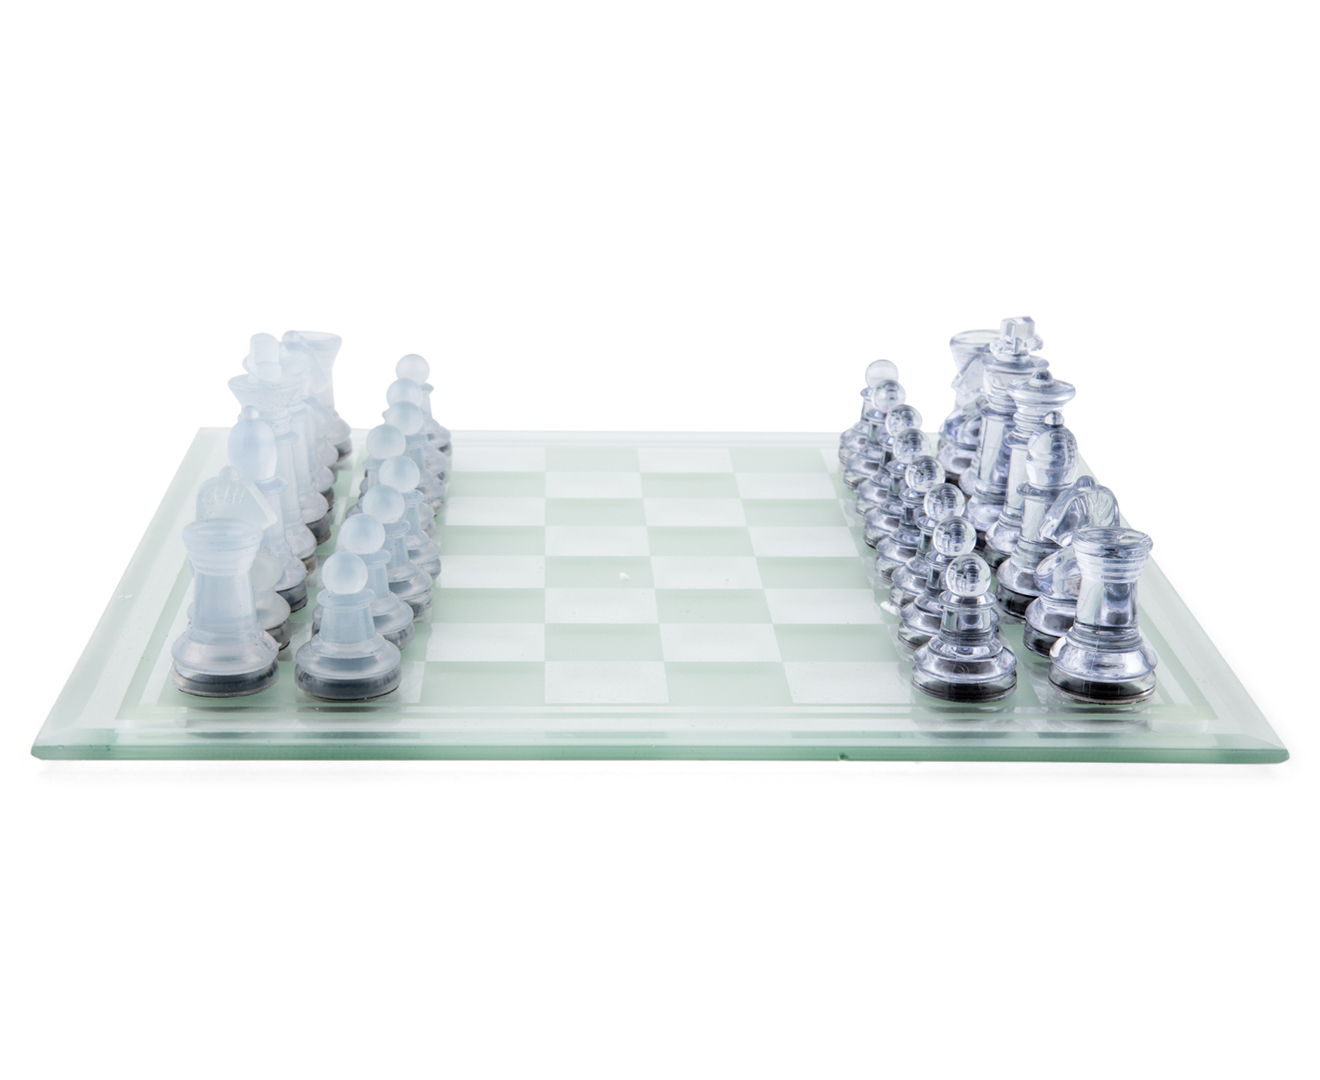 Cardinal Chess Checkers Set W Glass Board Ebay